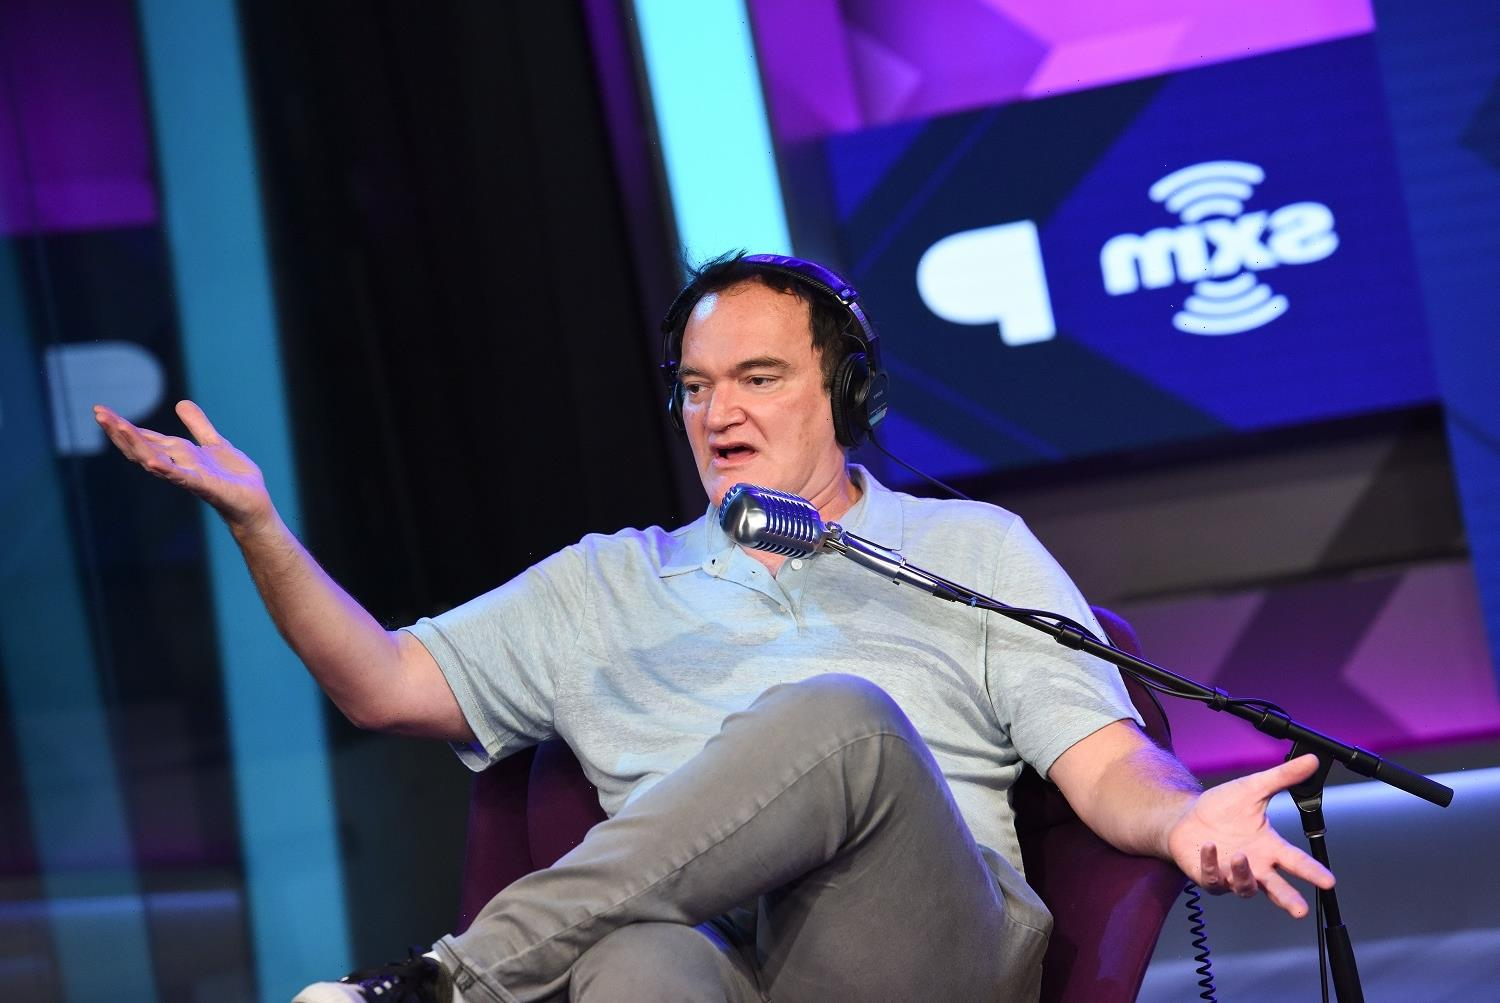 Quentin Tarantino Doubles Down on Bruce Lee Insults, Tells Critics to 'Suck a D*ck'